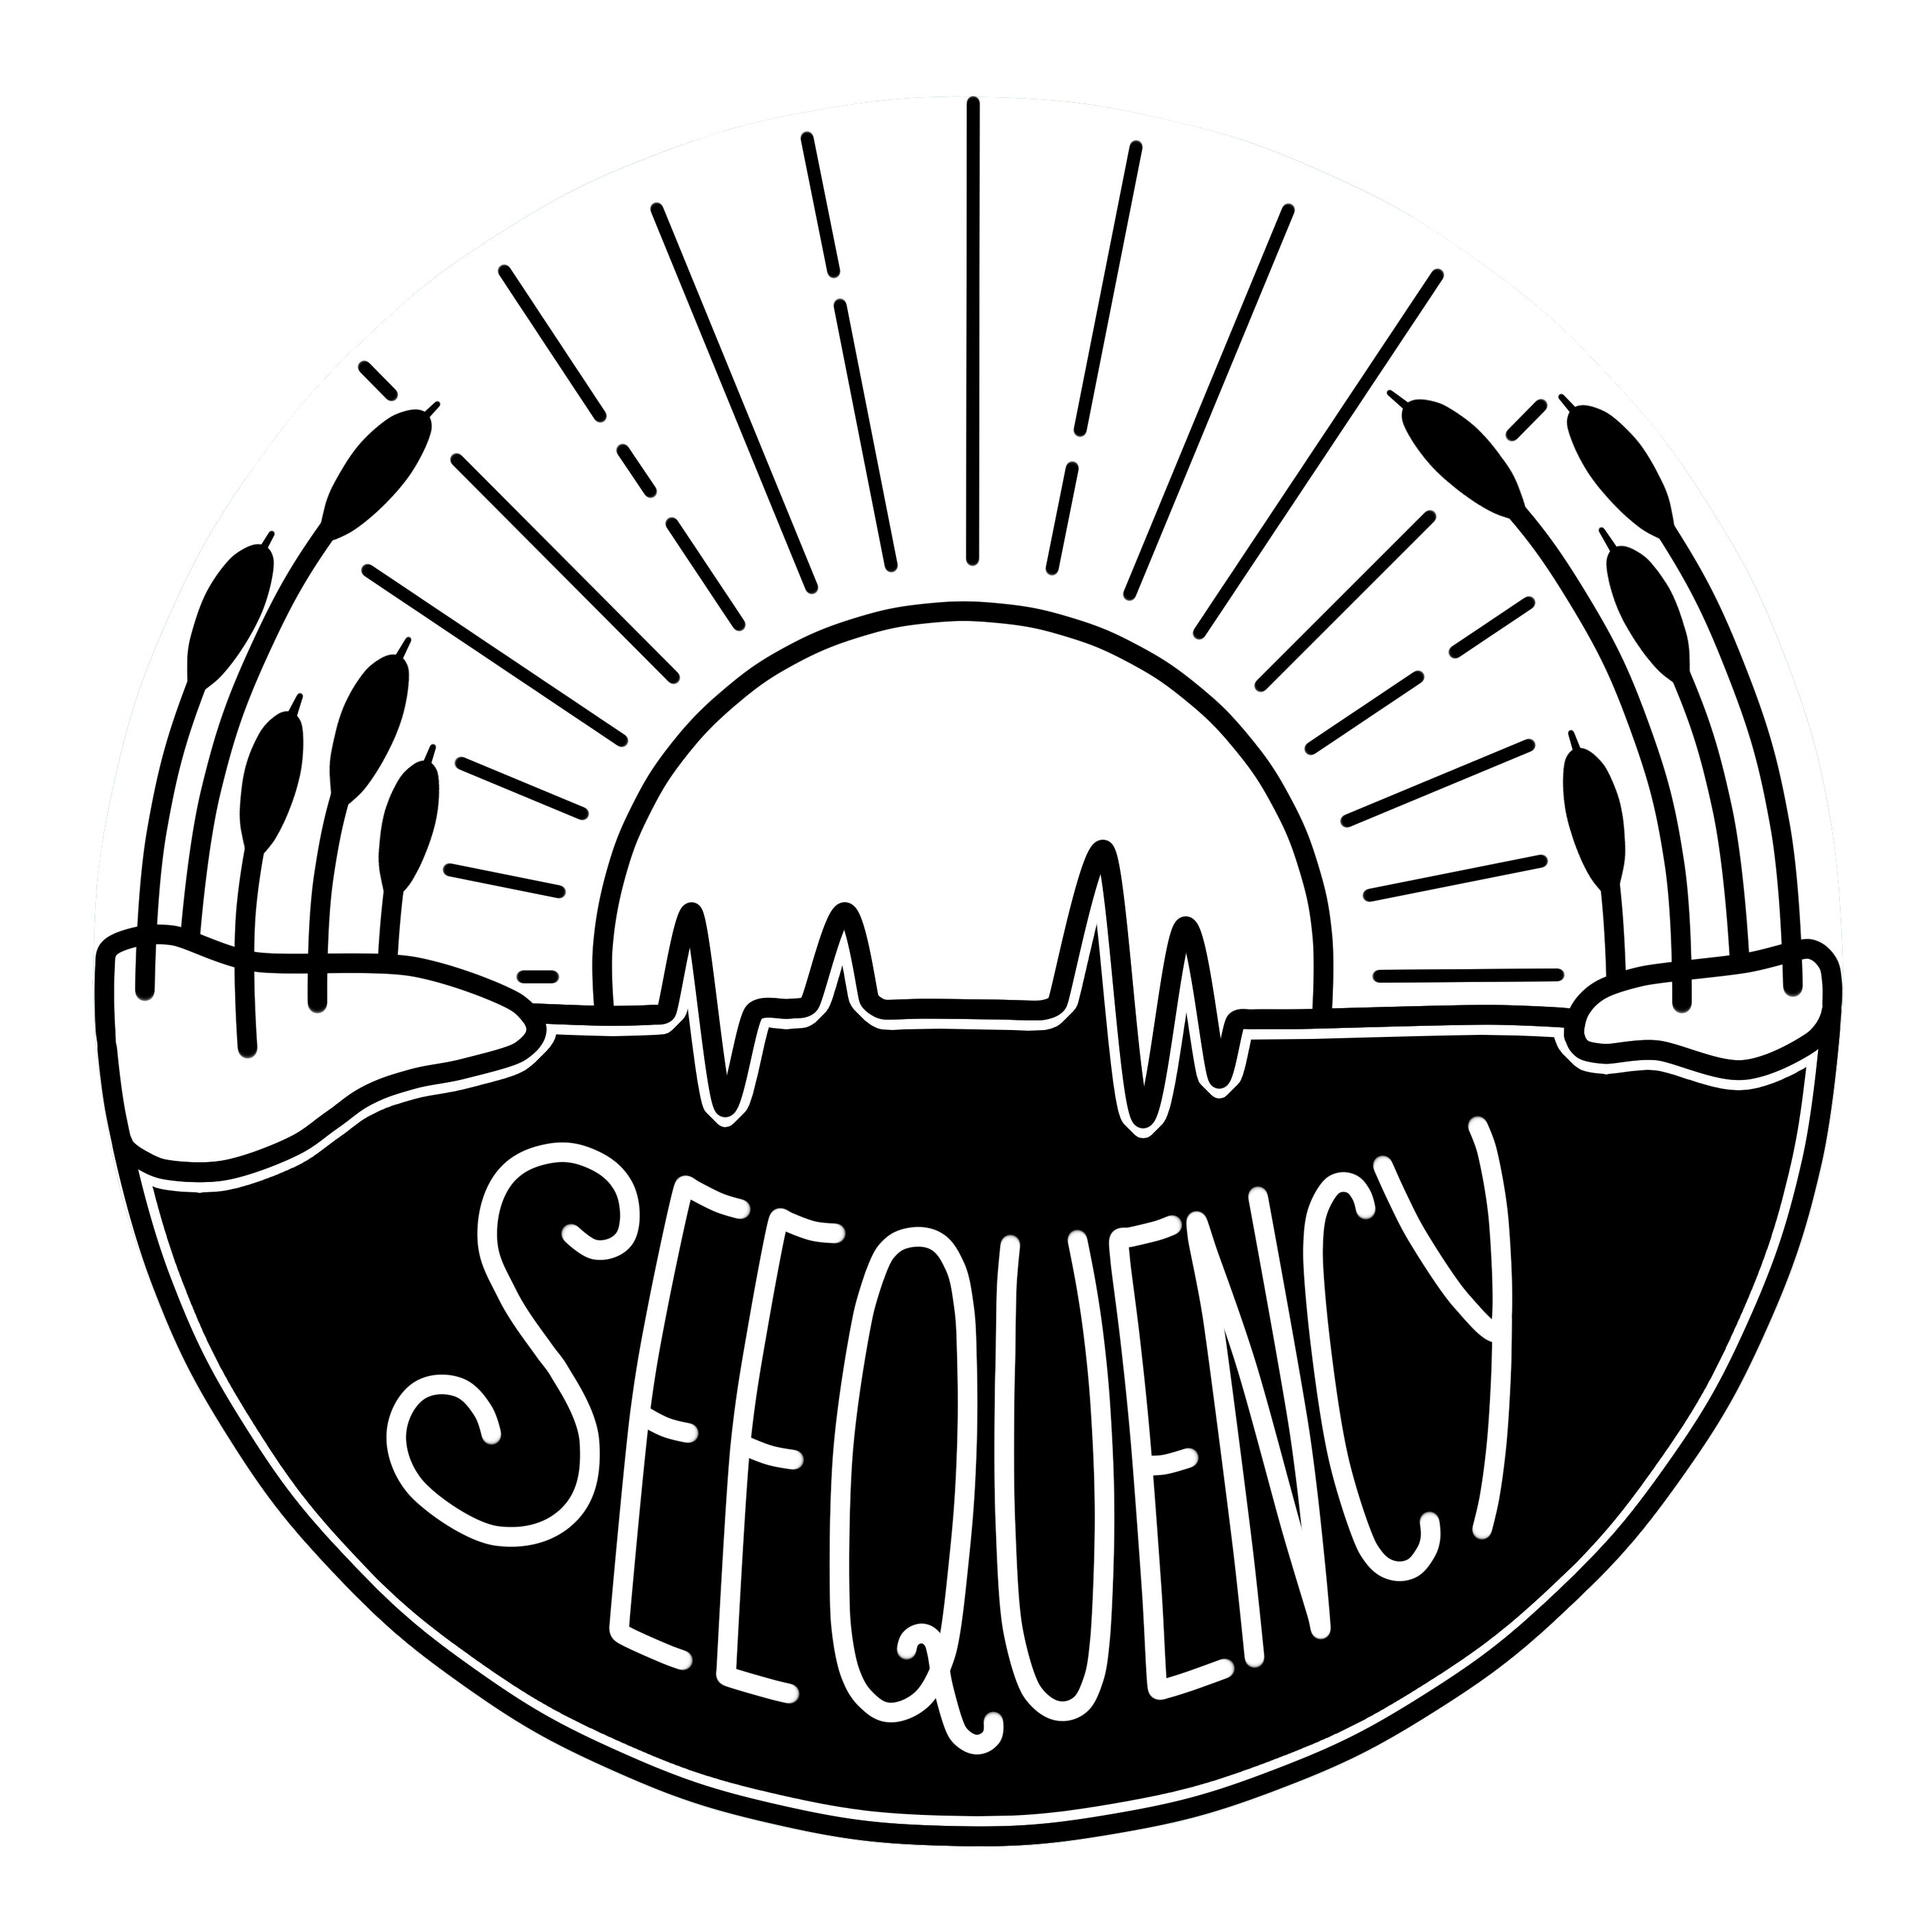 SEEQUENCY